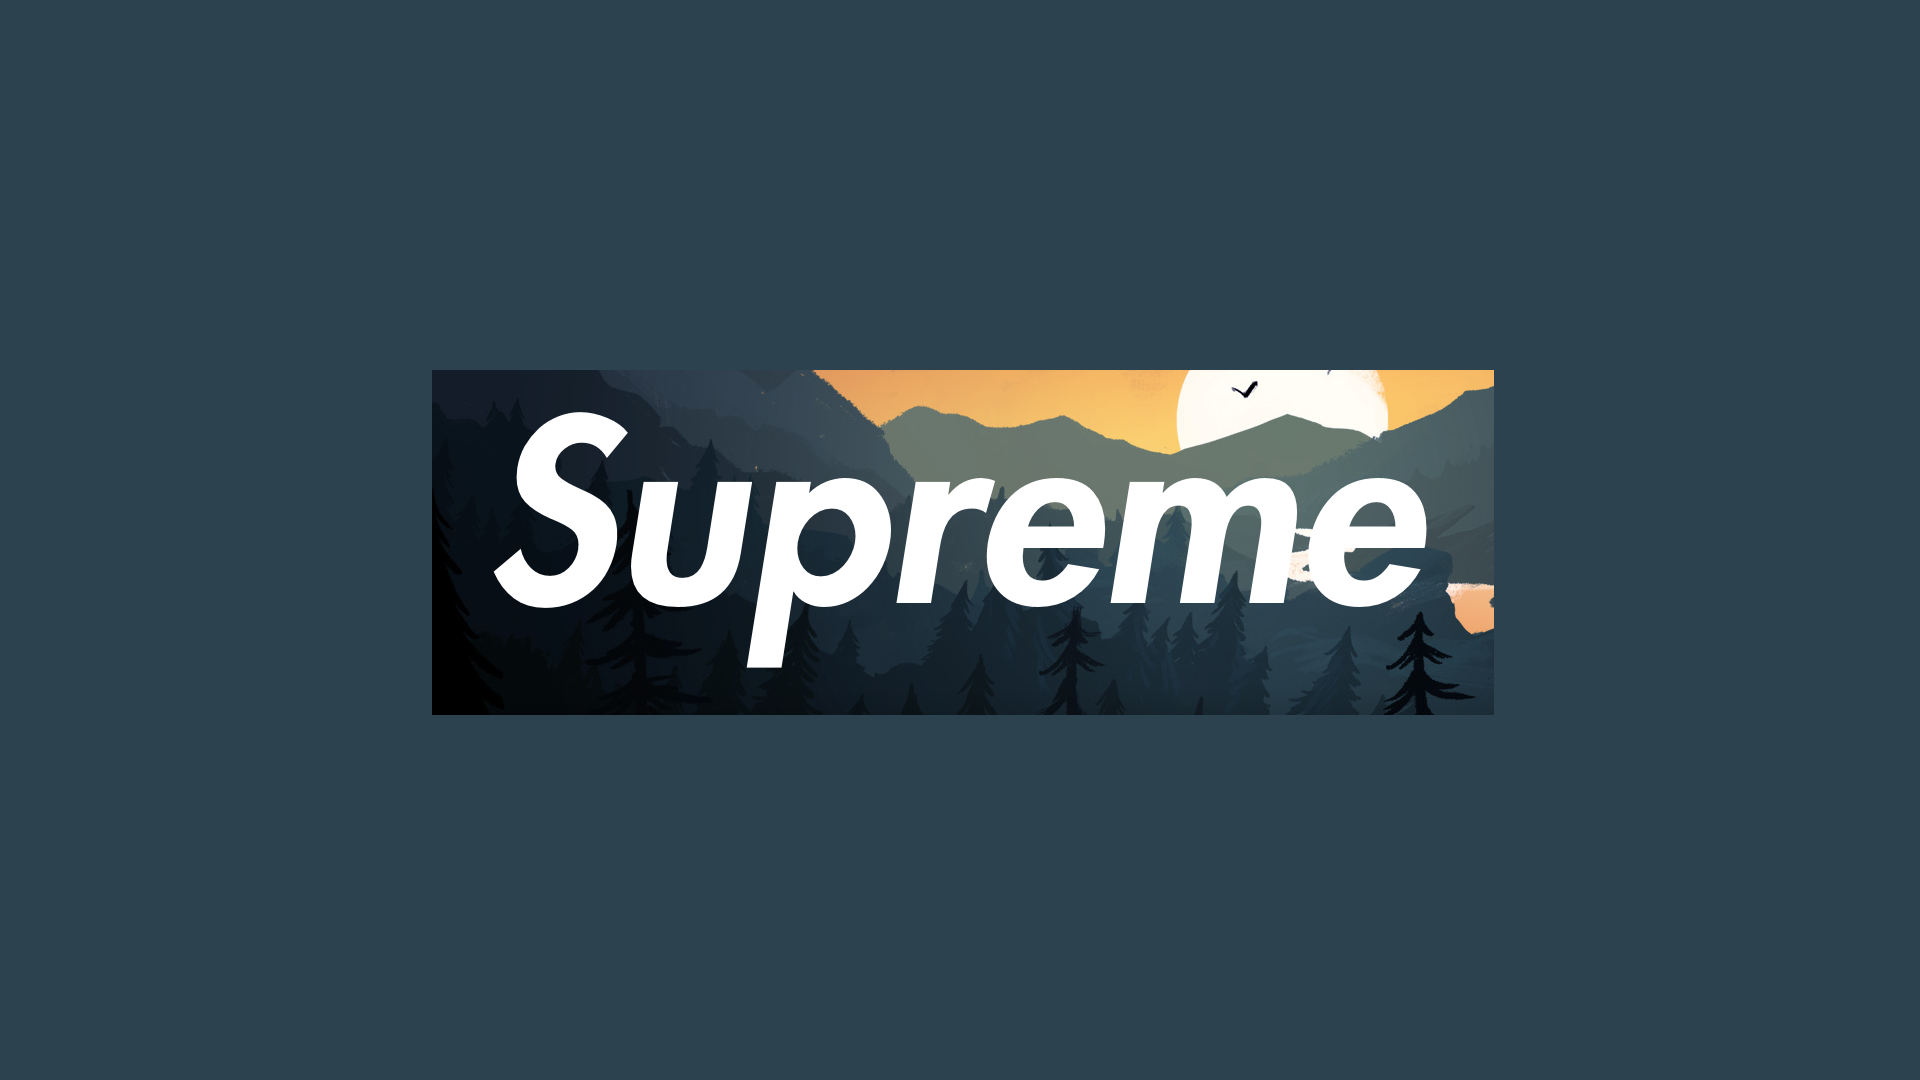 Supreme x firewatch 1920x1080